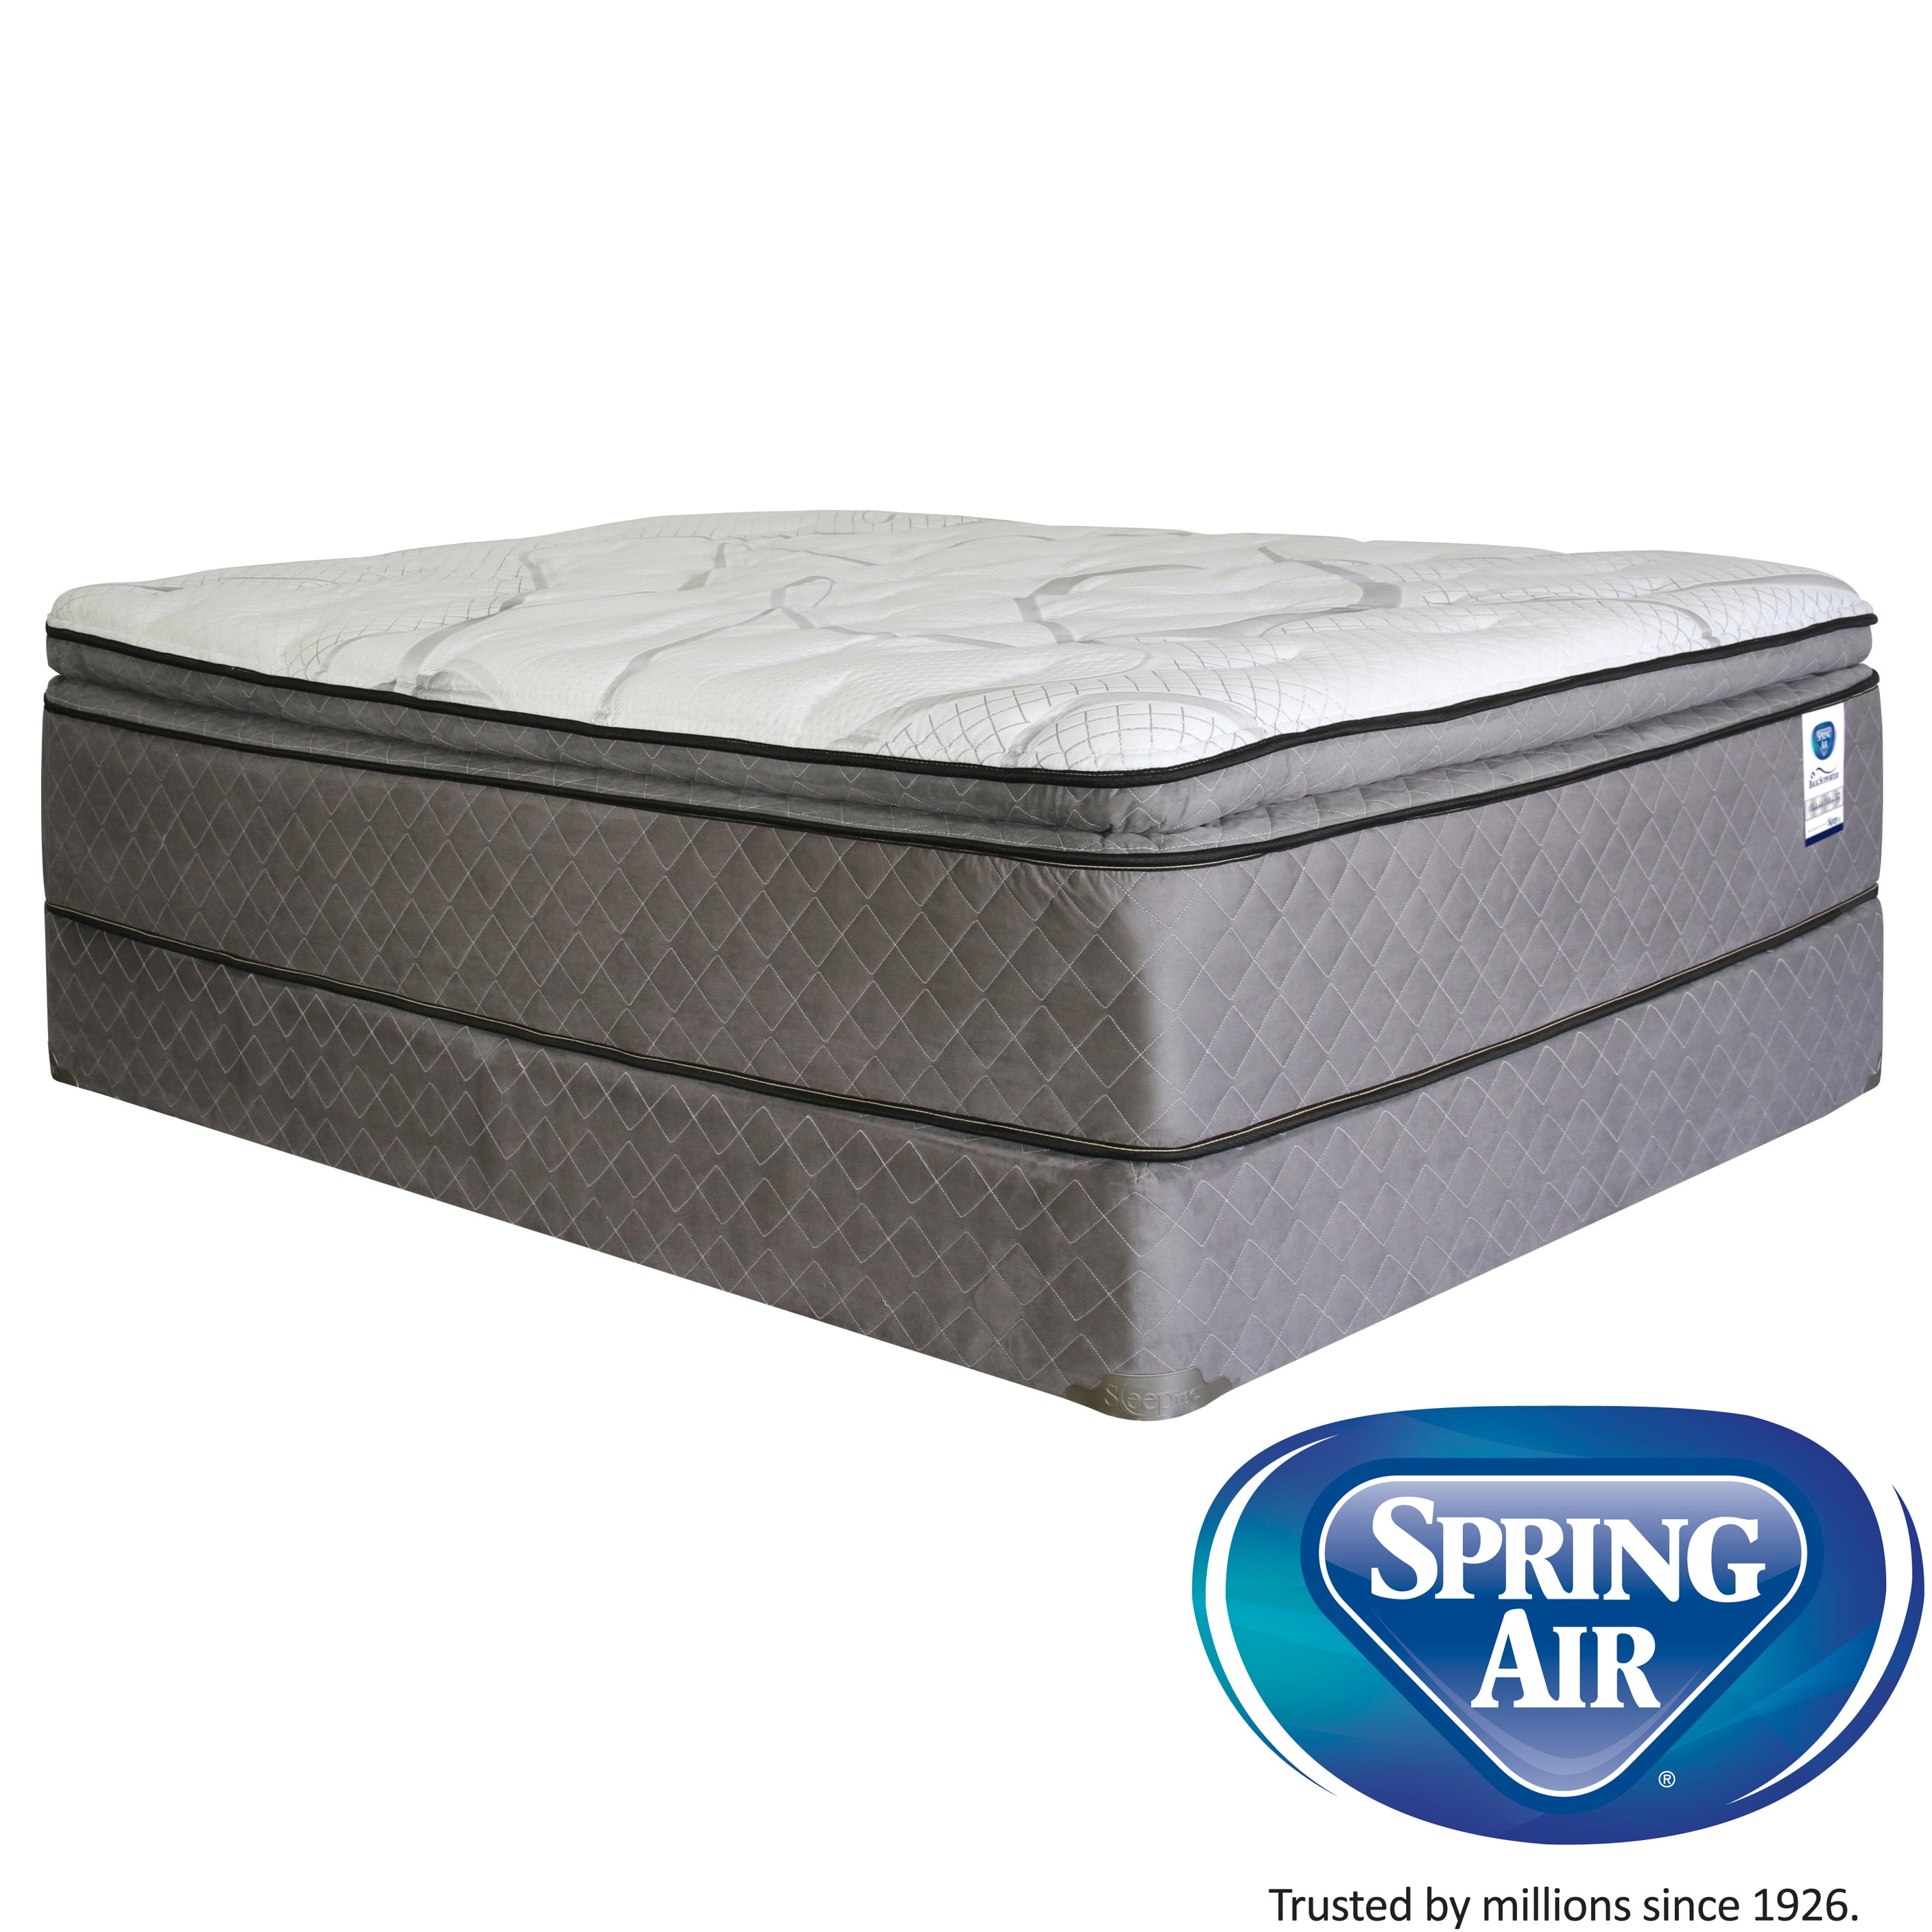 Spring Air Back Supporter Roseworth Firm Full Size Mattress Set Bed Mattress Sale